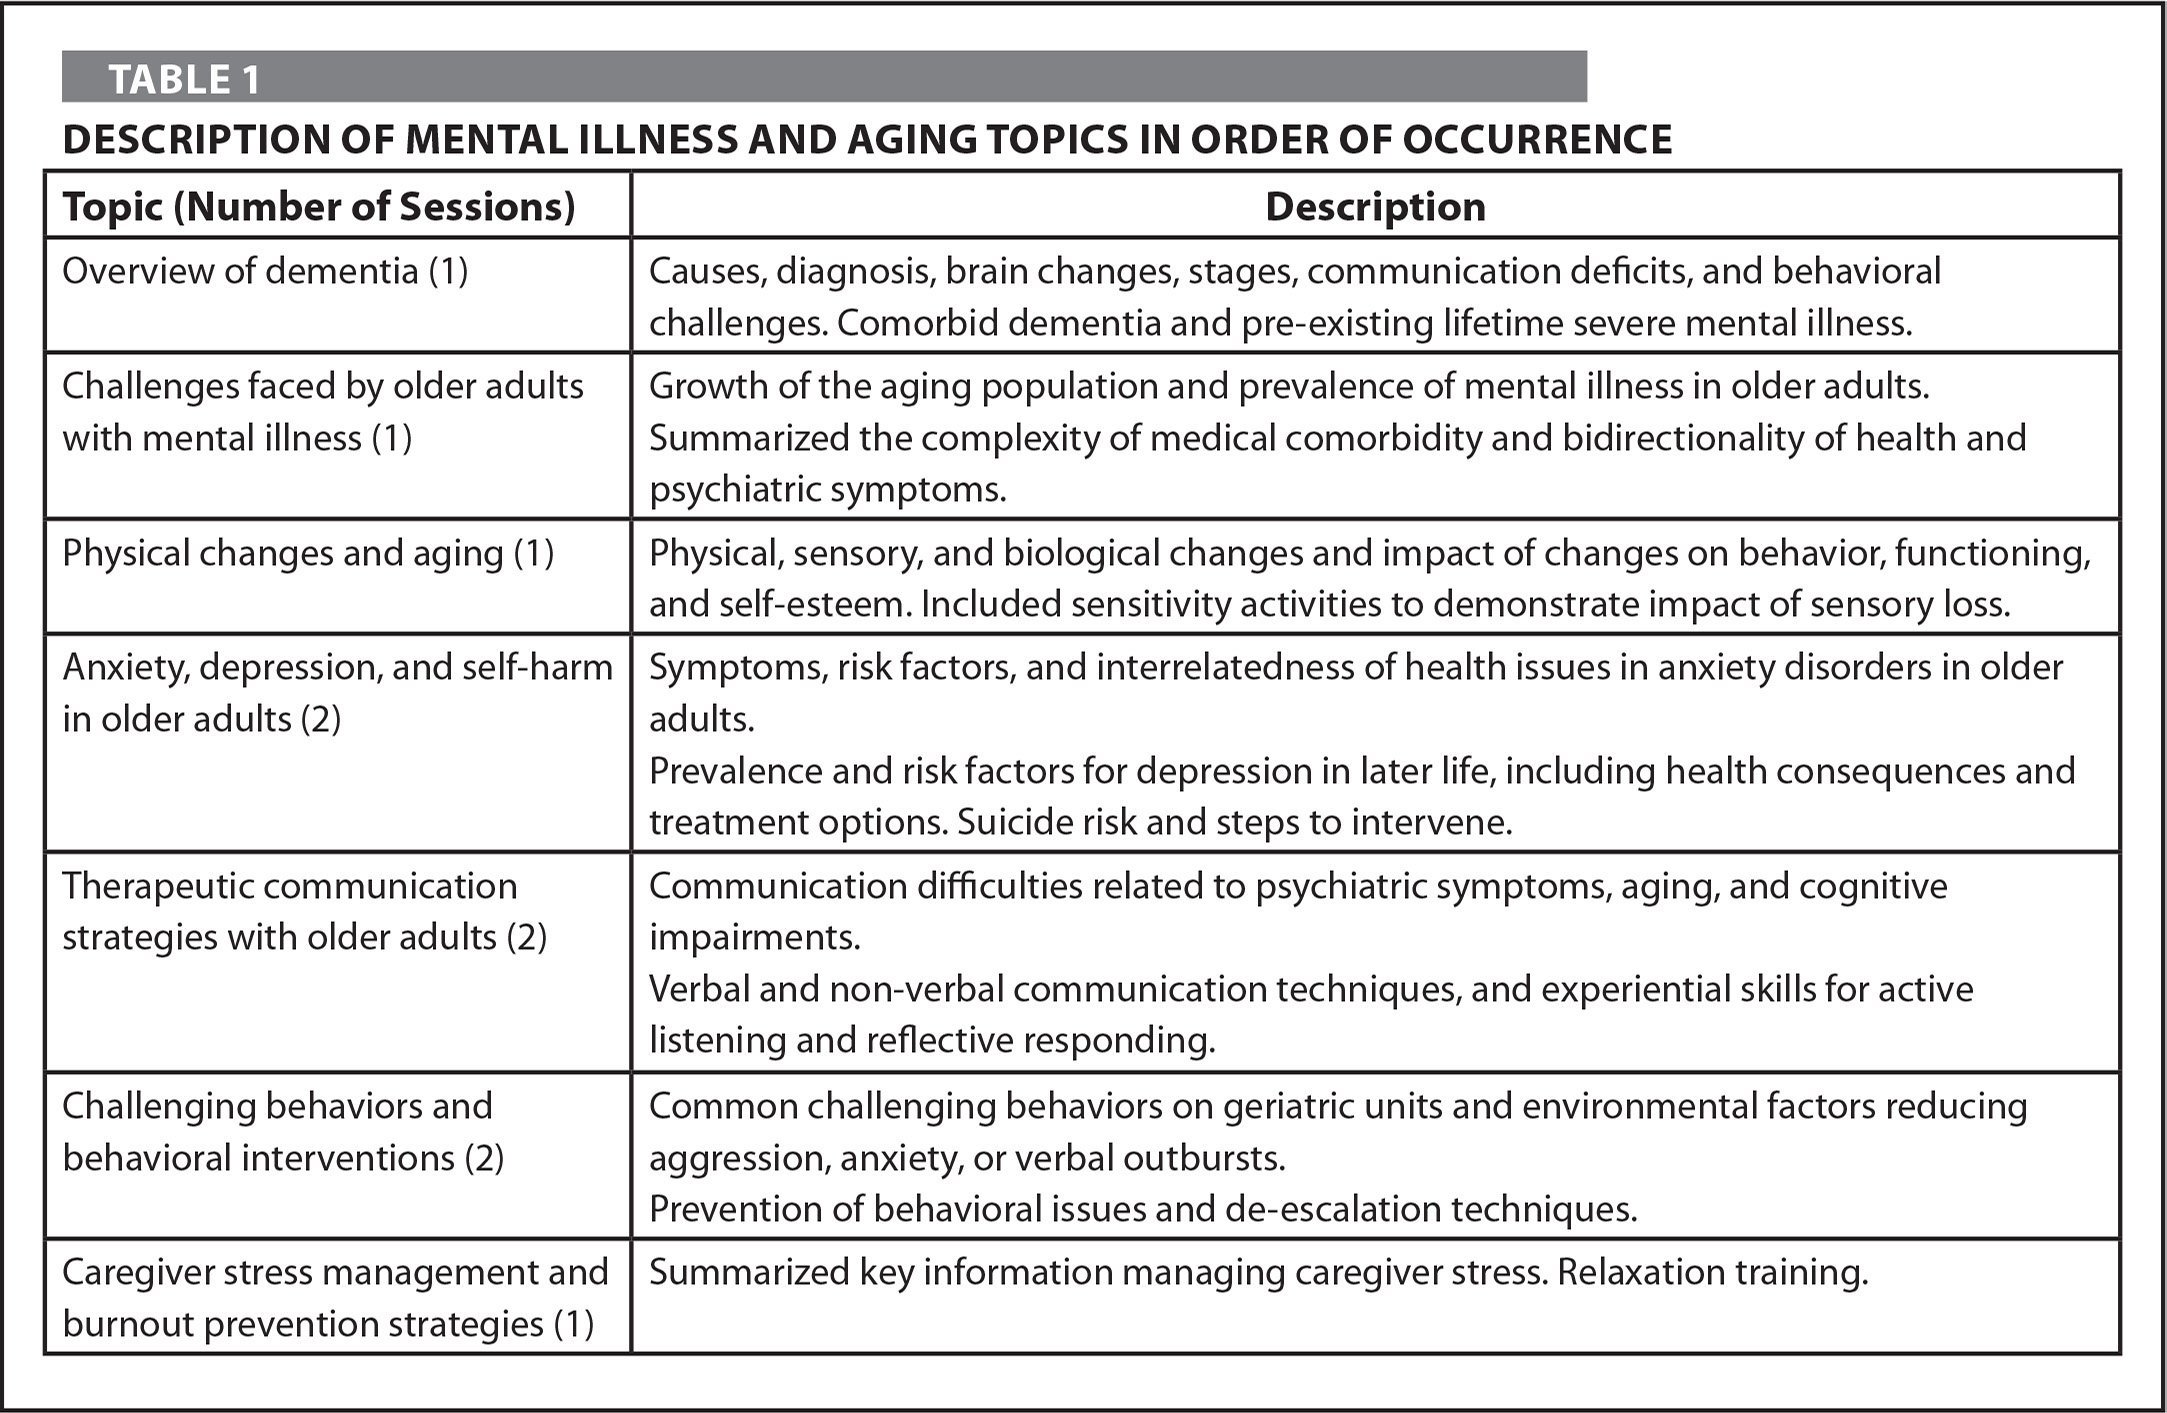 Description of Mental Illness and Aging Topics in Order of Occurrence